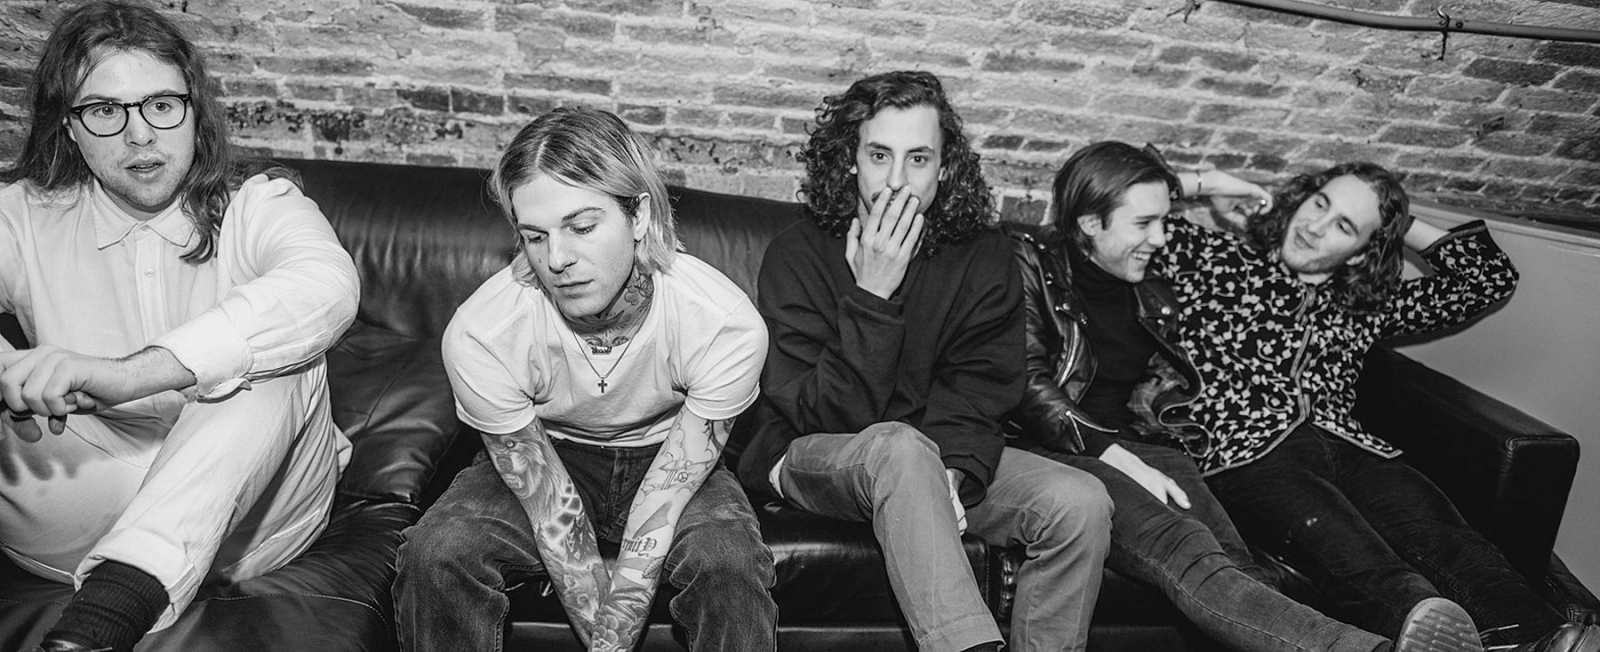 Wiped Out! – The Neighbourhood: It will wipe you out!